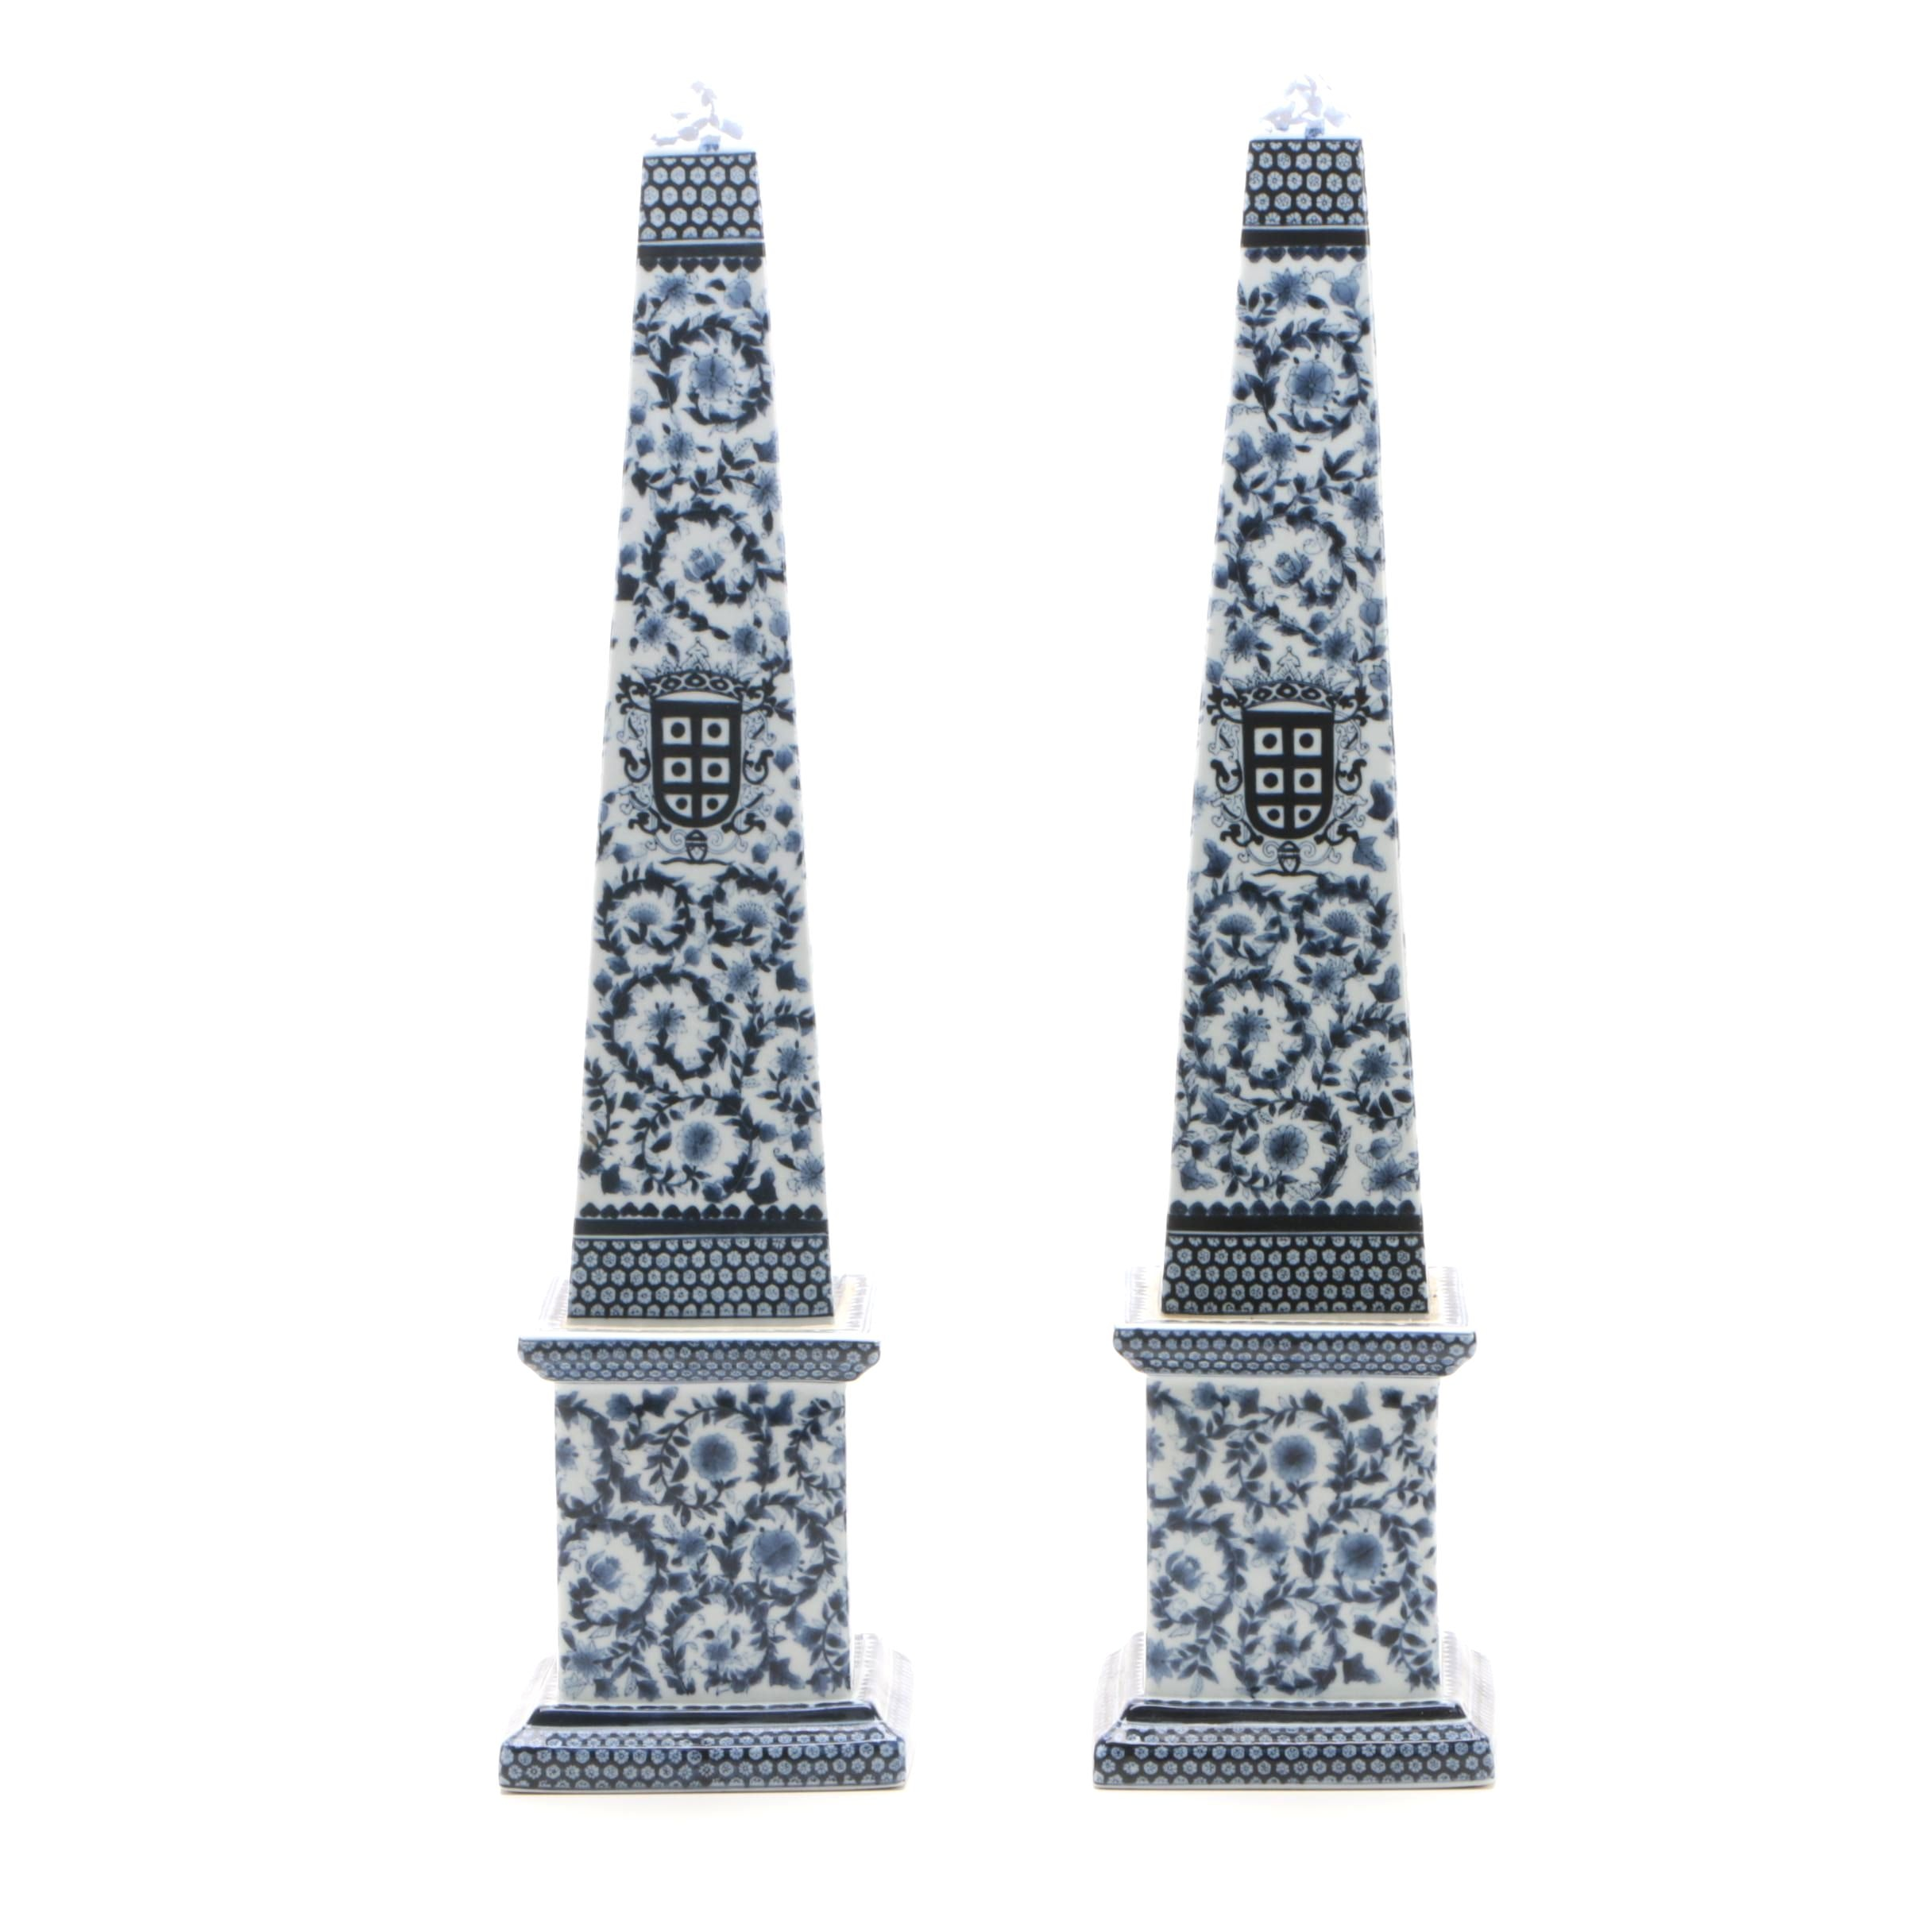 Decorative Chinese Blue and White Porcelain Obelisks